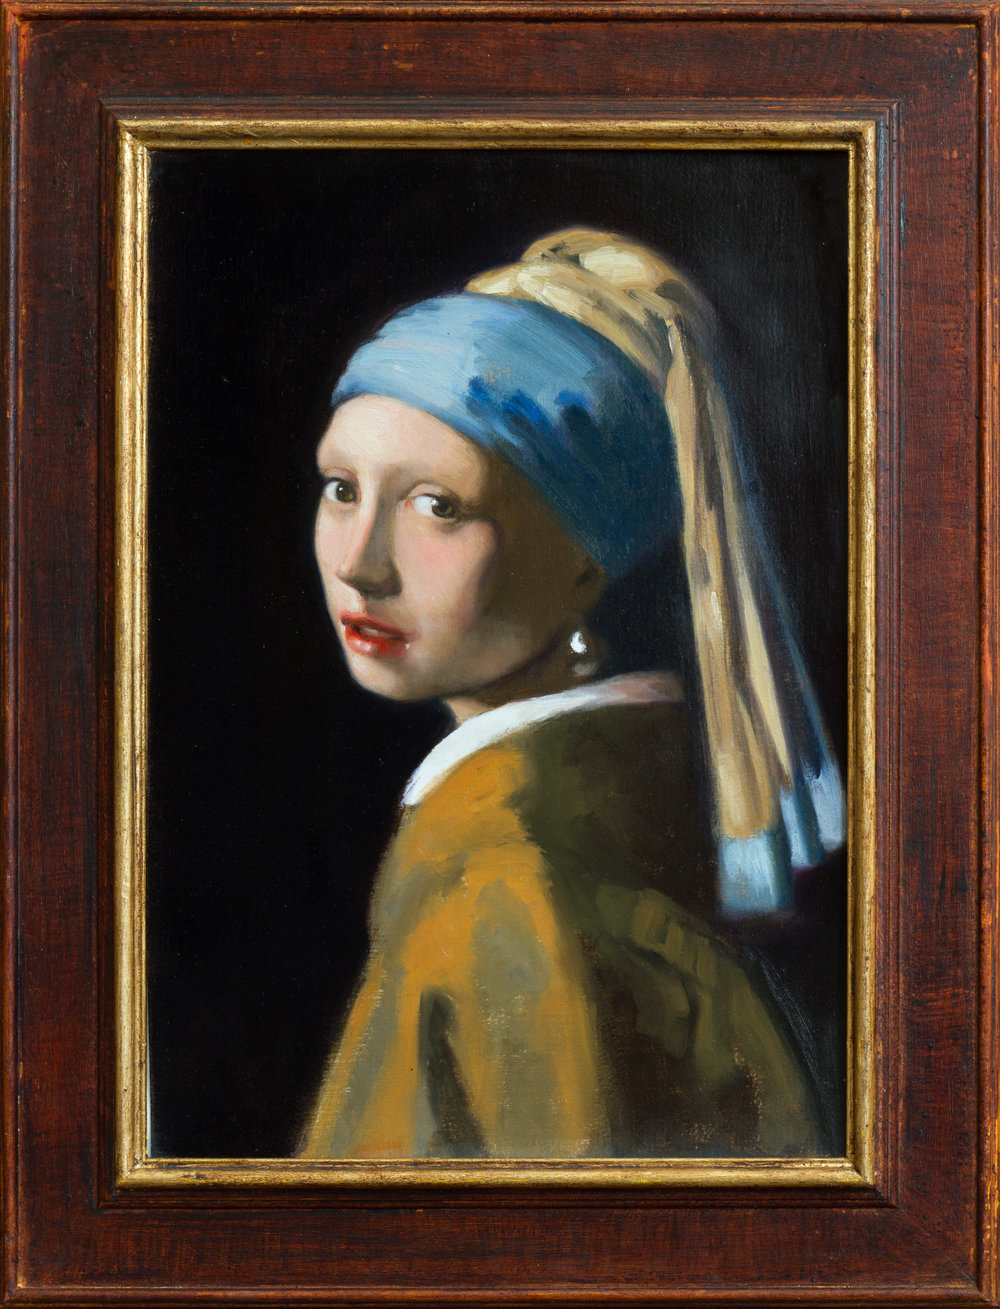 Copy after Vermeer's  Girl with a Pearl Earring, 35x50, framed, January 2018